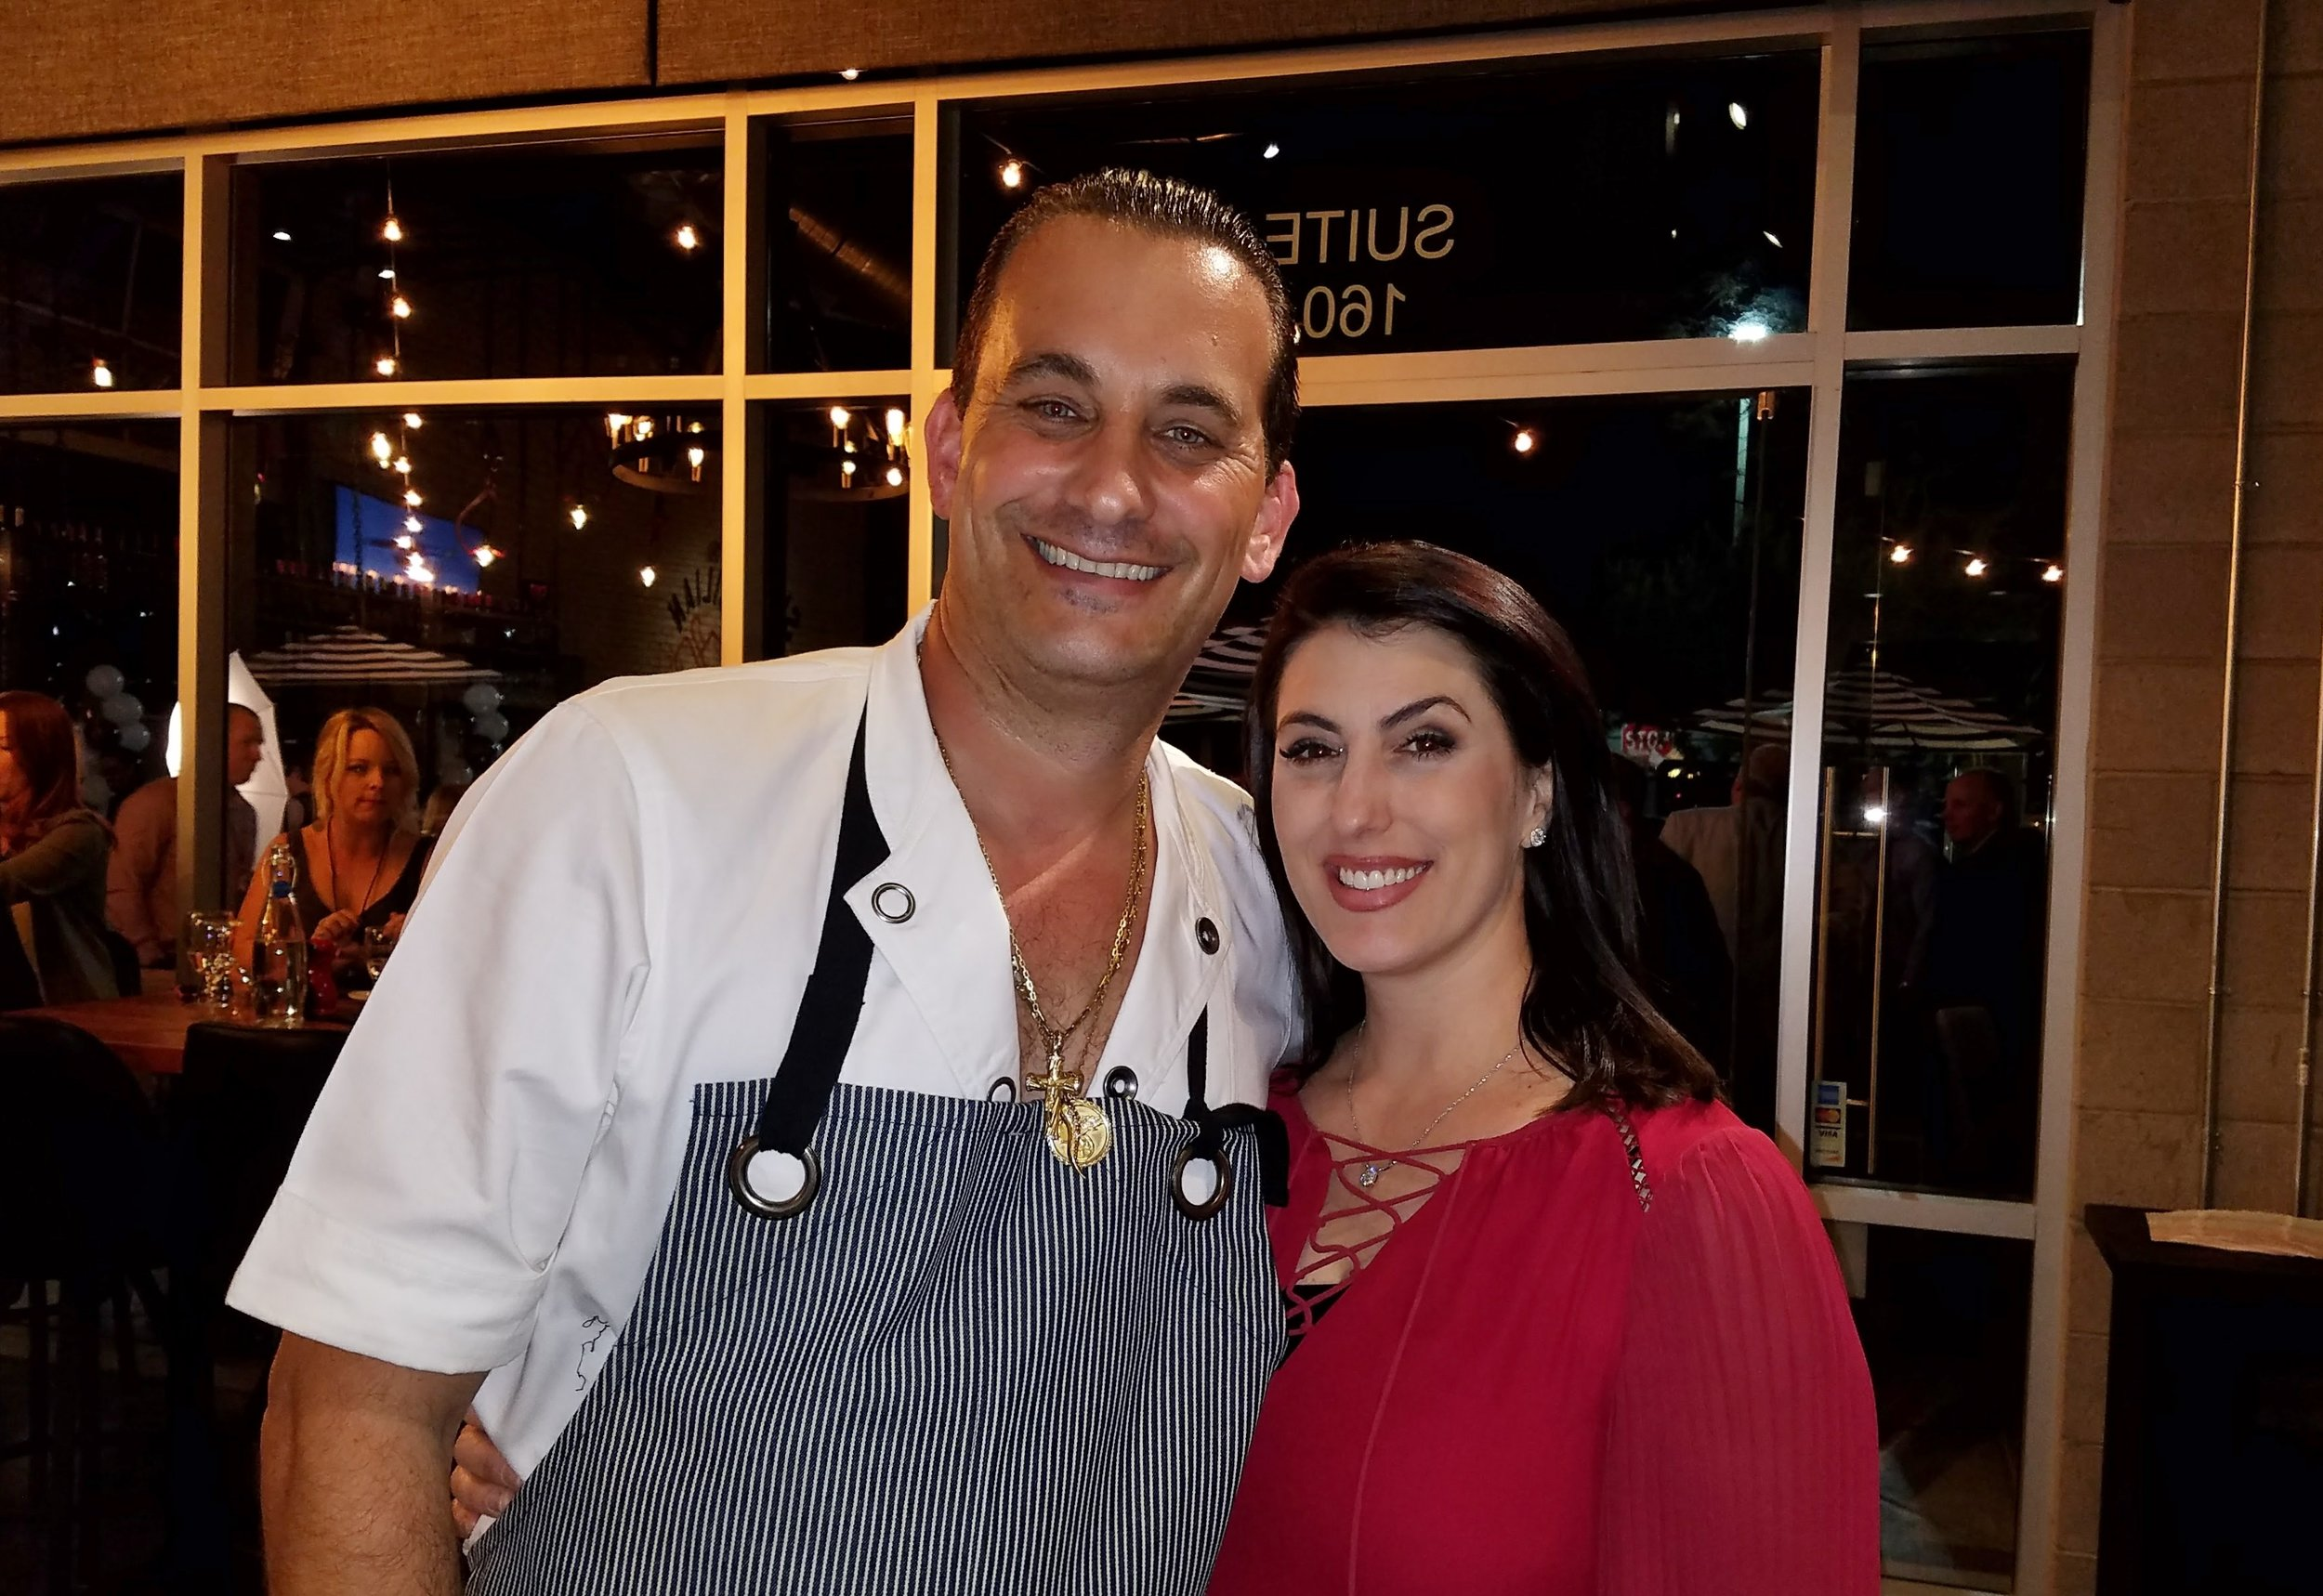 Chef-owner Joey Maggiore and his wife Cristina